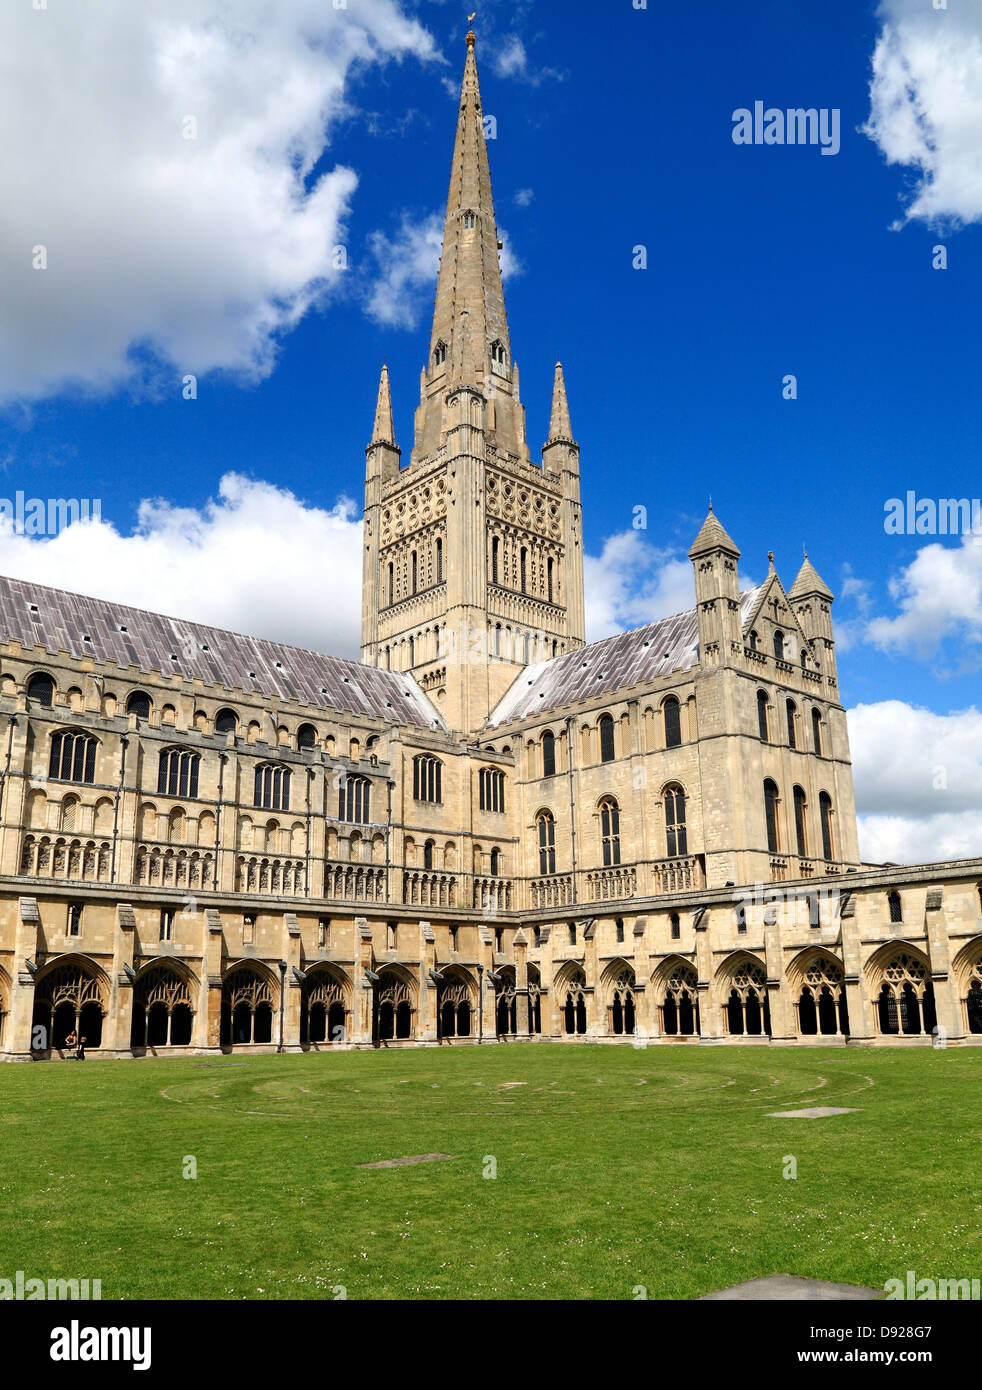 Norwich Cathedral Spire , Nave, Transept and Cloisters, Norfolk, England, English medieval cathedrals - Stock Image